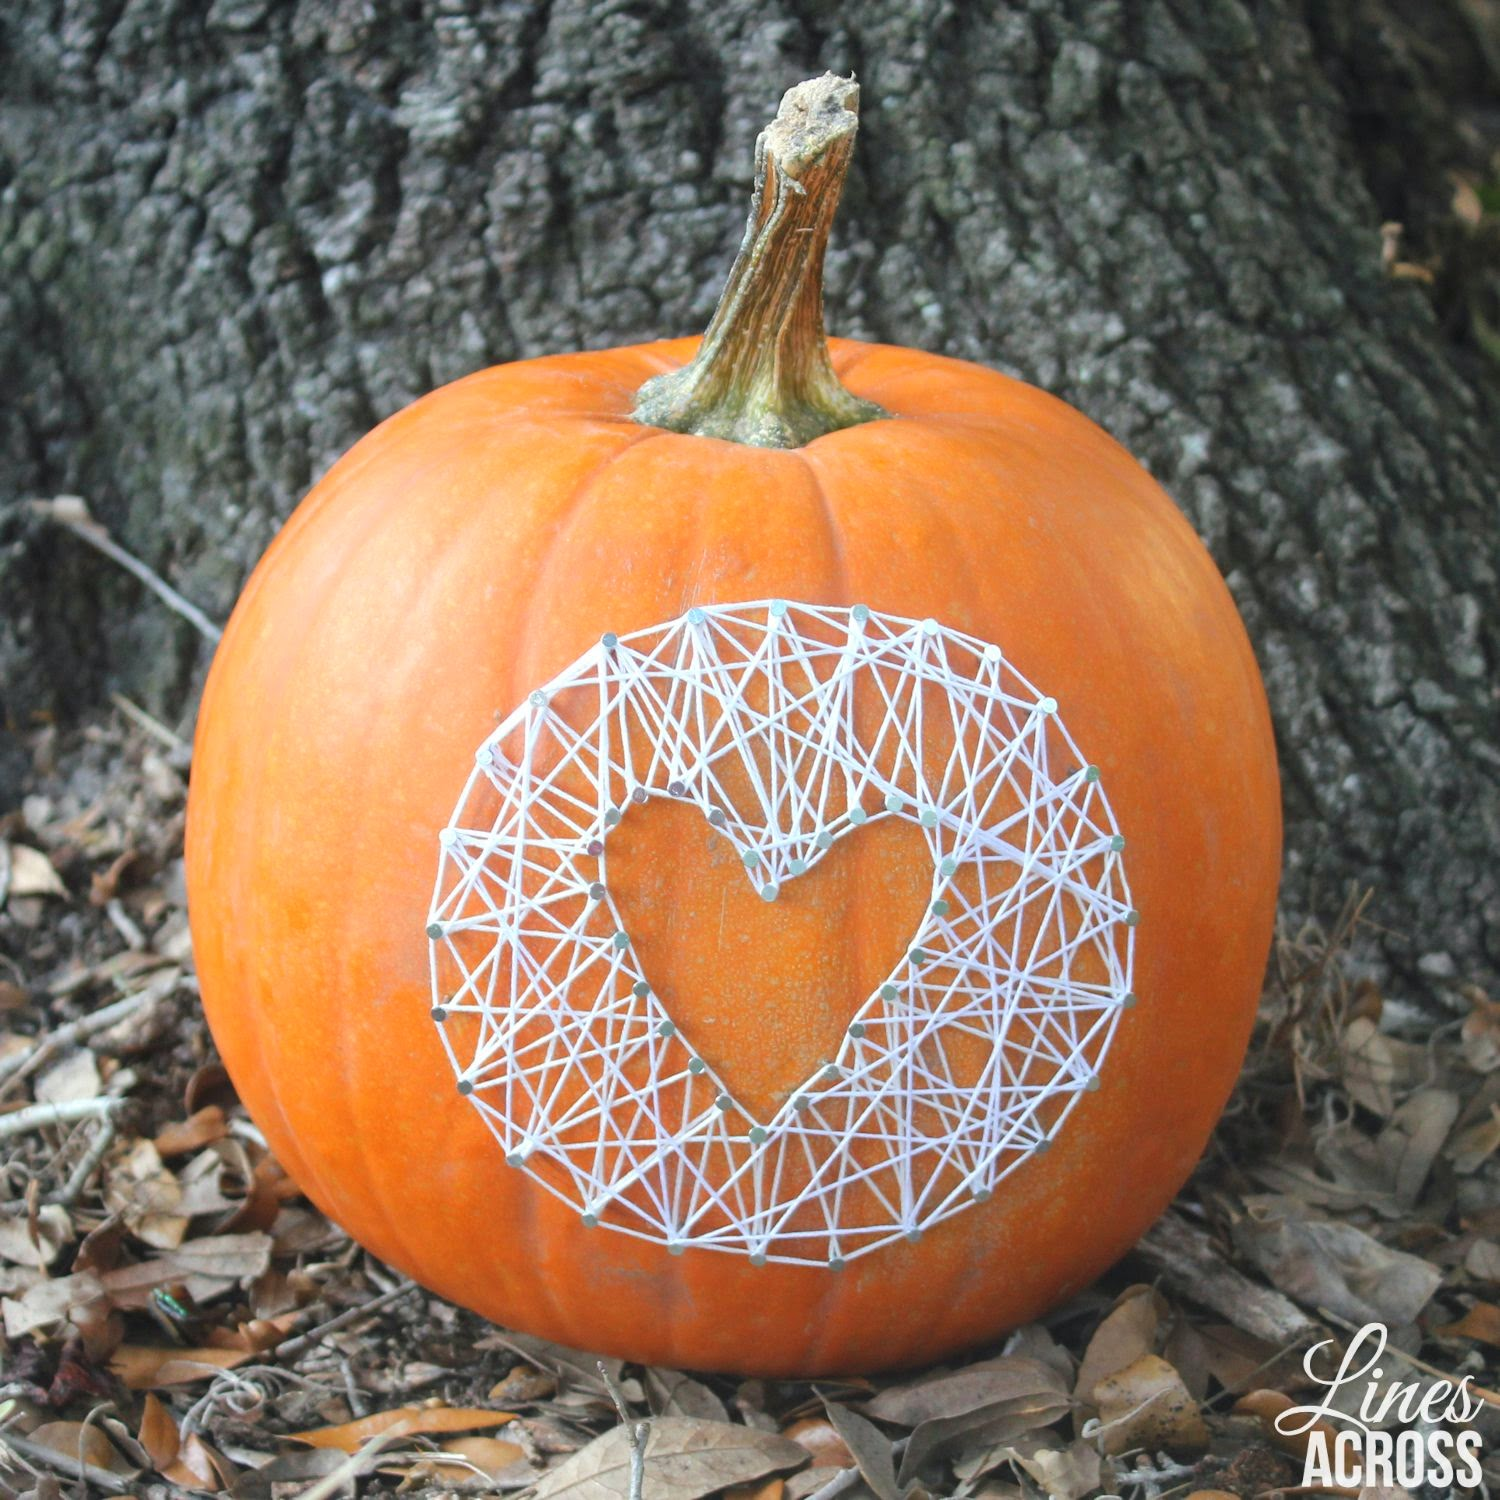 60+ pumpkin designs we love for 2017 - pumpkin decorating ideas